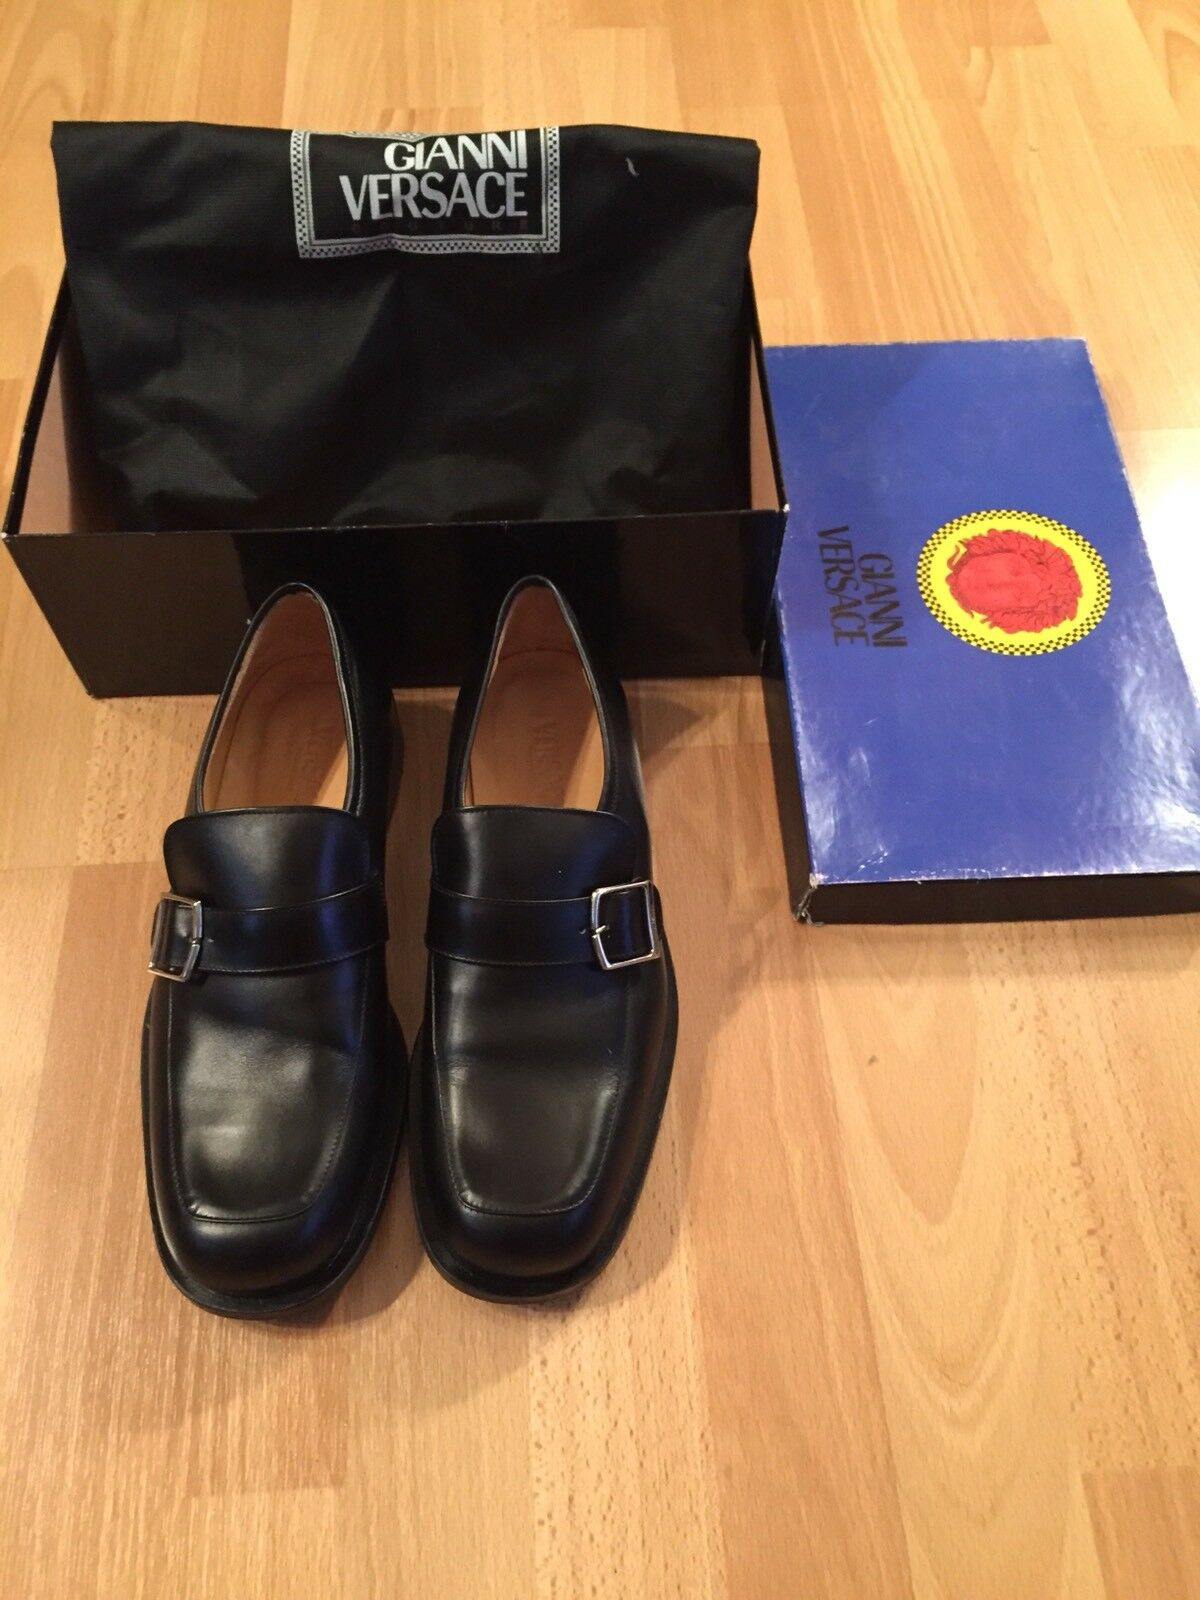 Gianni Versace Men nero Leather scarpe w  Strap & Buckle, Sz 41 Made in